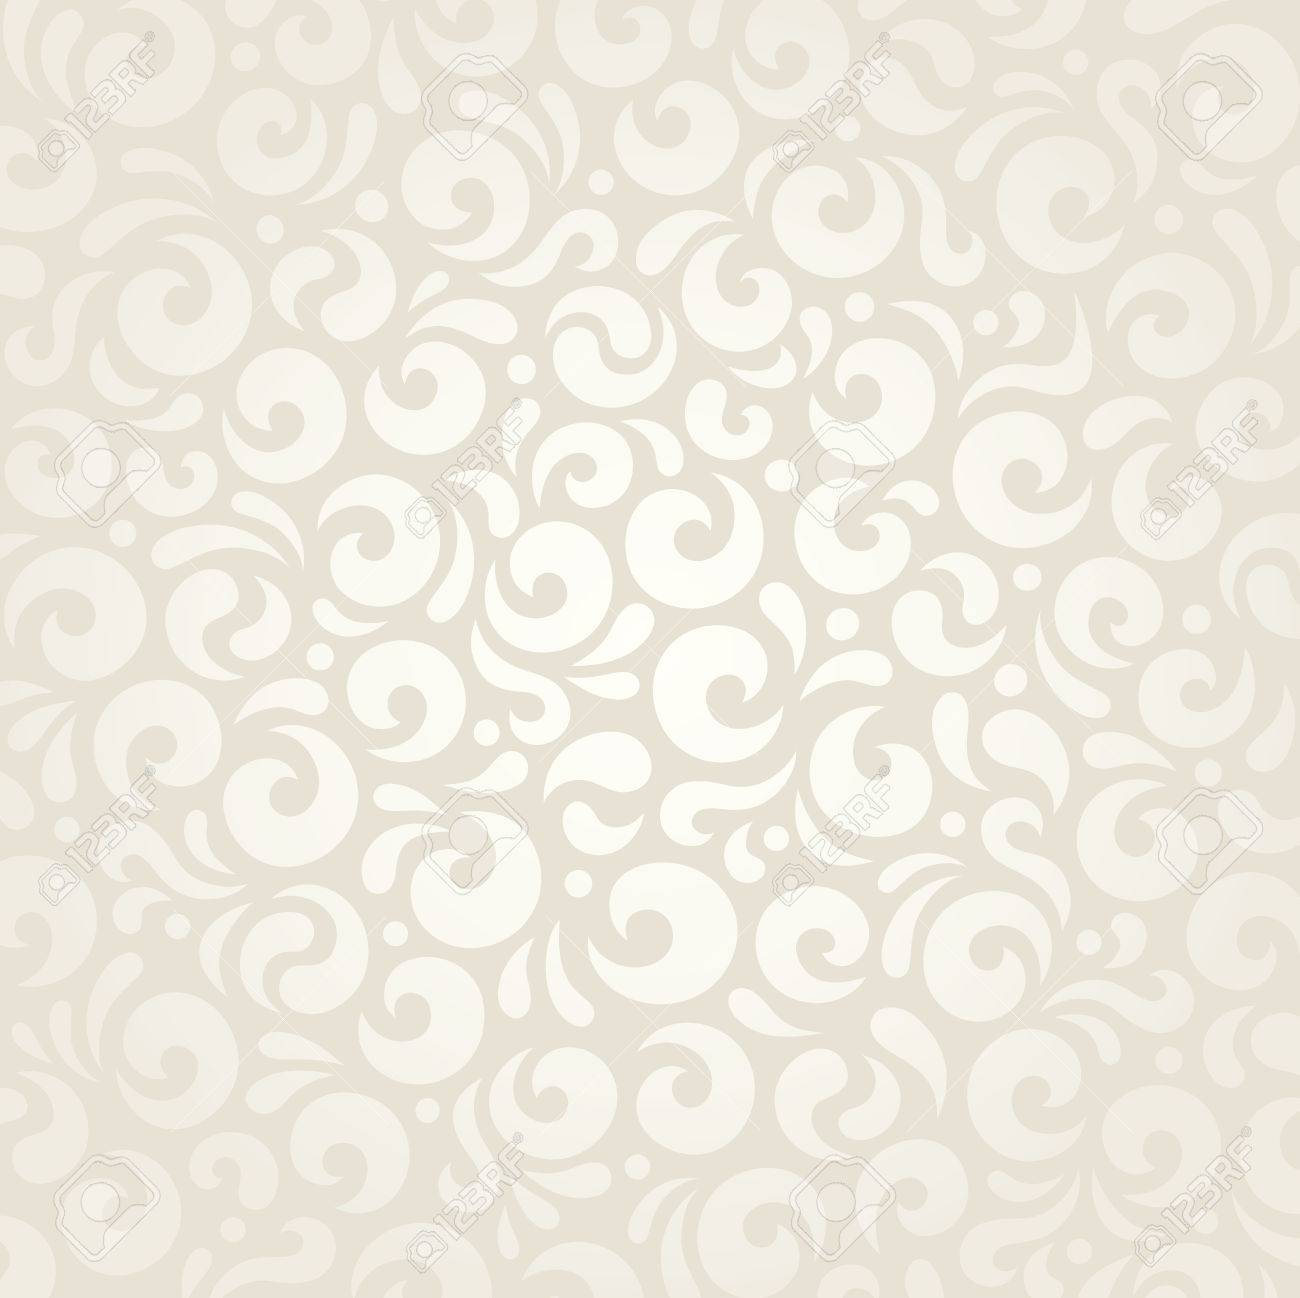 Wedding Retro Pale Wallpaper Decorative Pattern Design Royalty